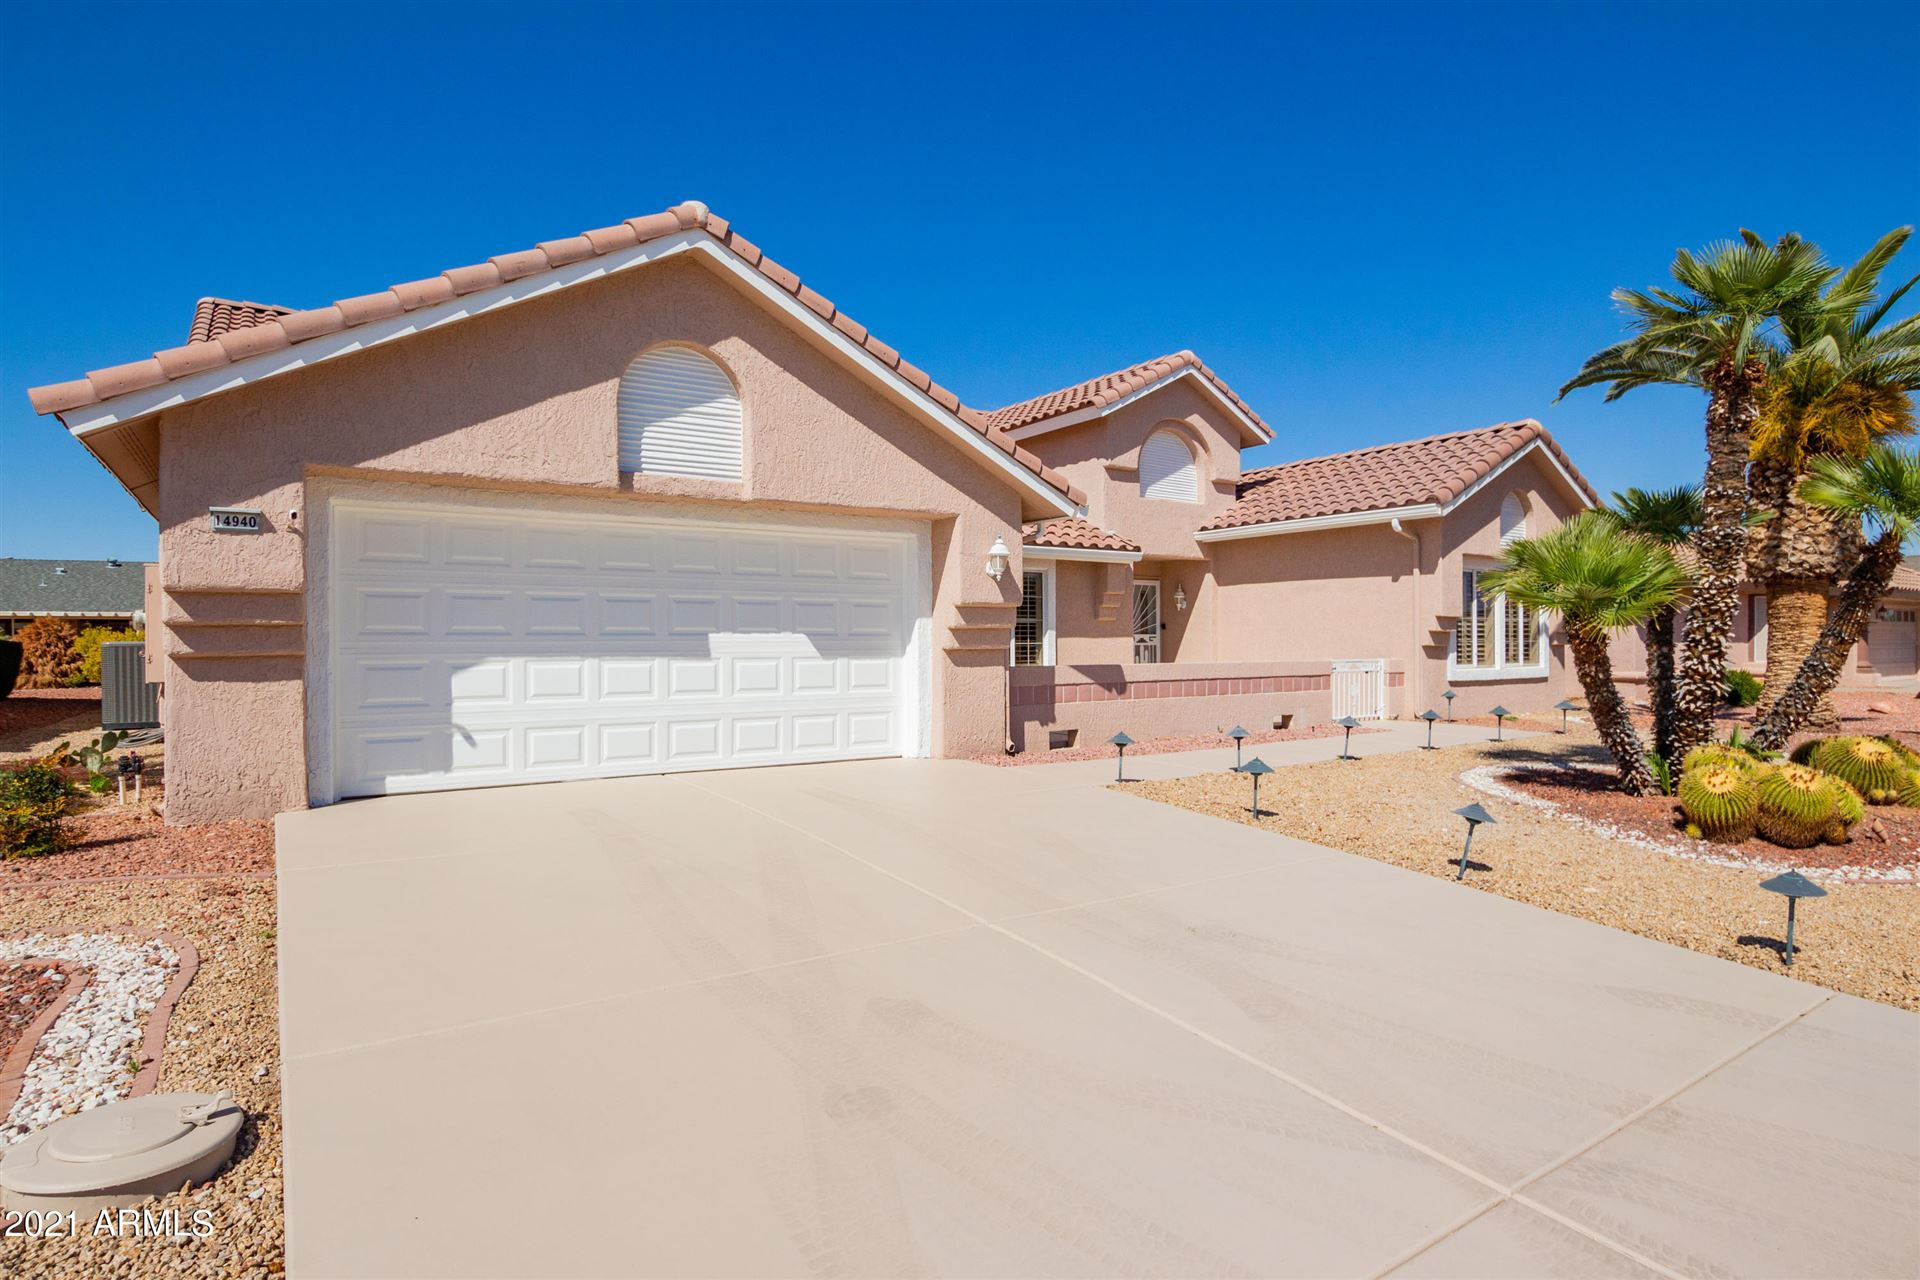 Photo of 14940 W ALPACA Drive, Sun City West, AZ 85375 (MLS # 6192637)